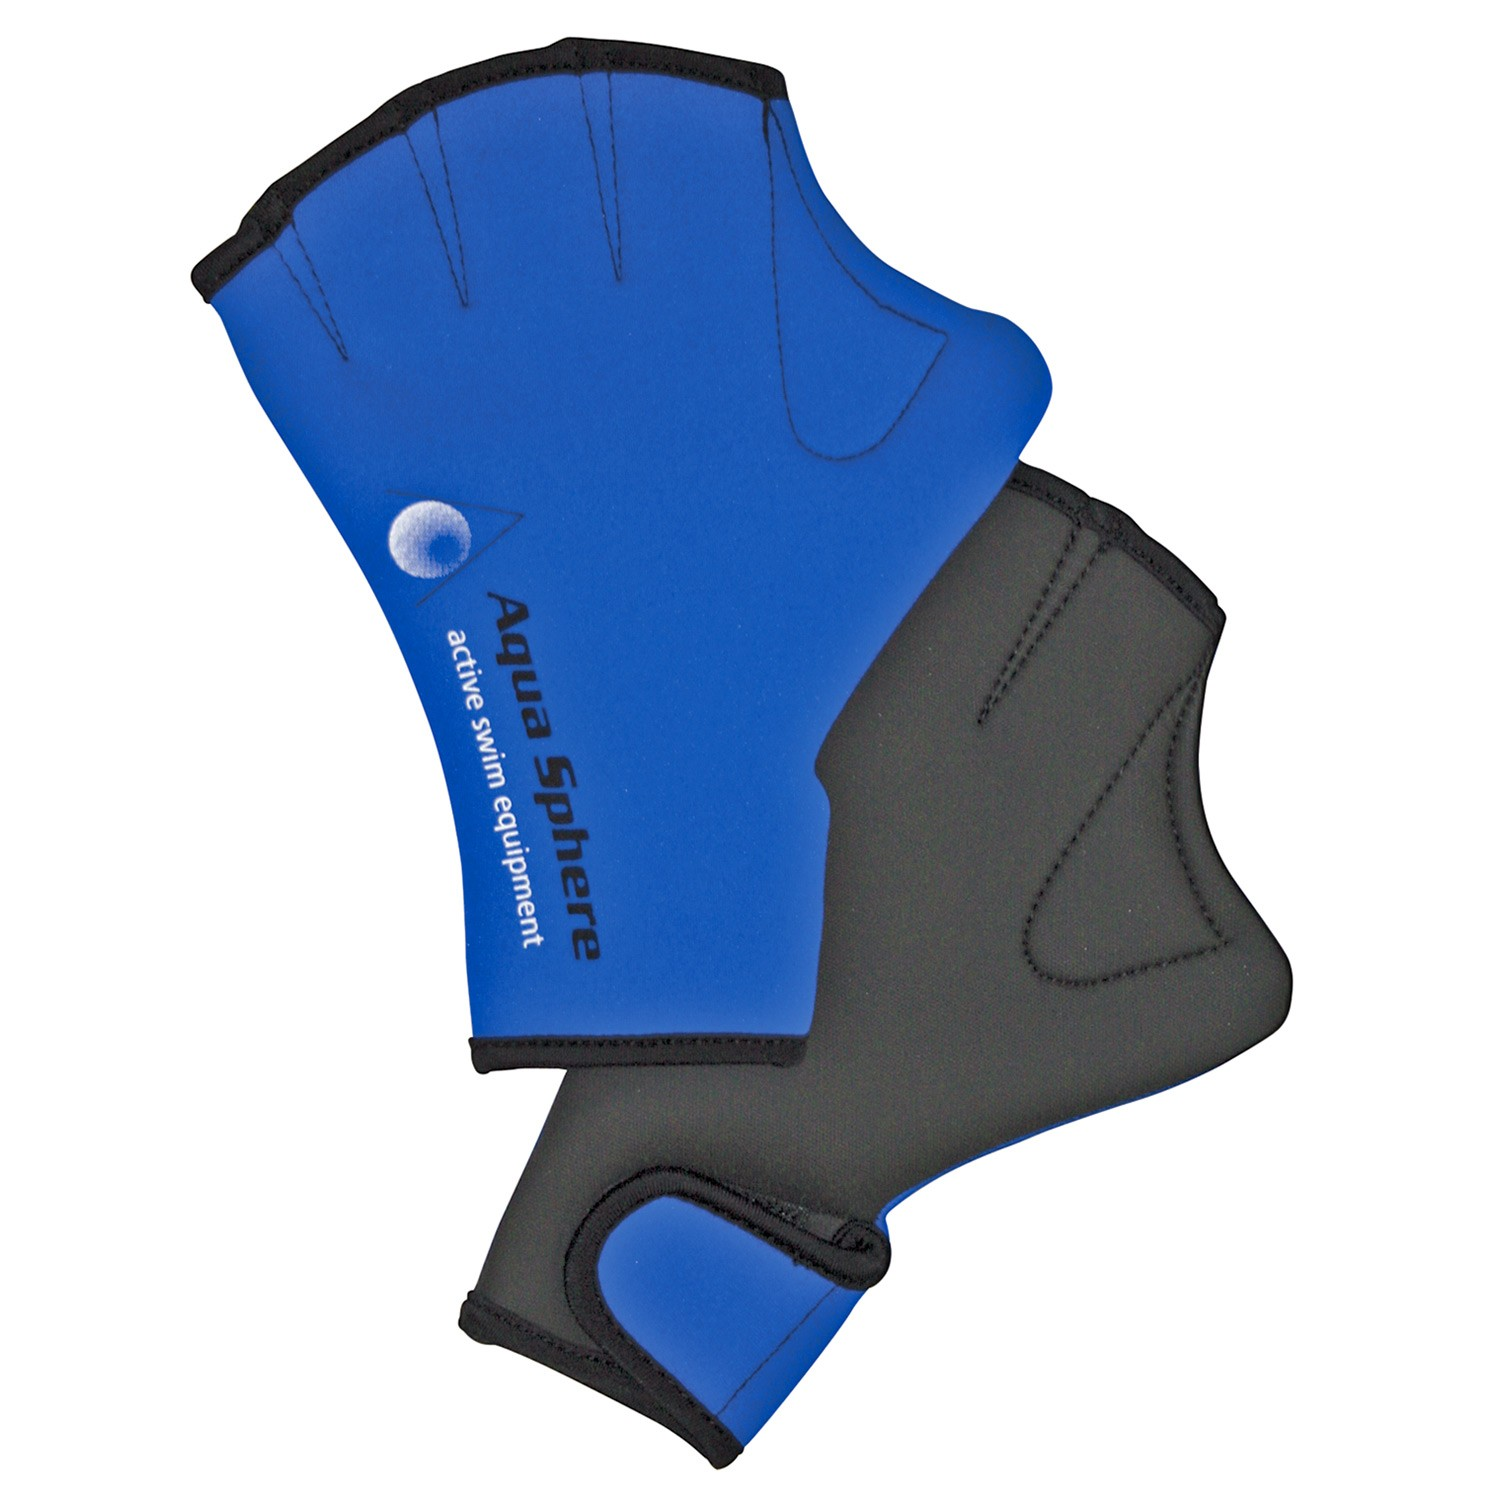 Aqua Sphere Neoprene Swim Gloves